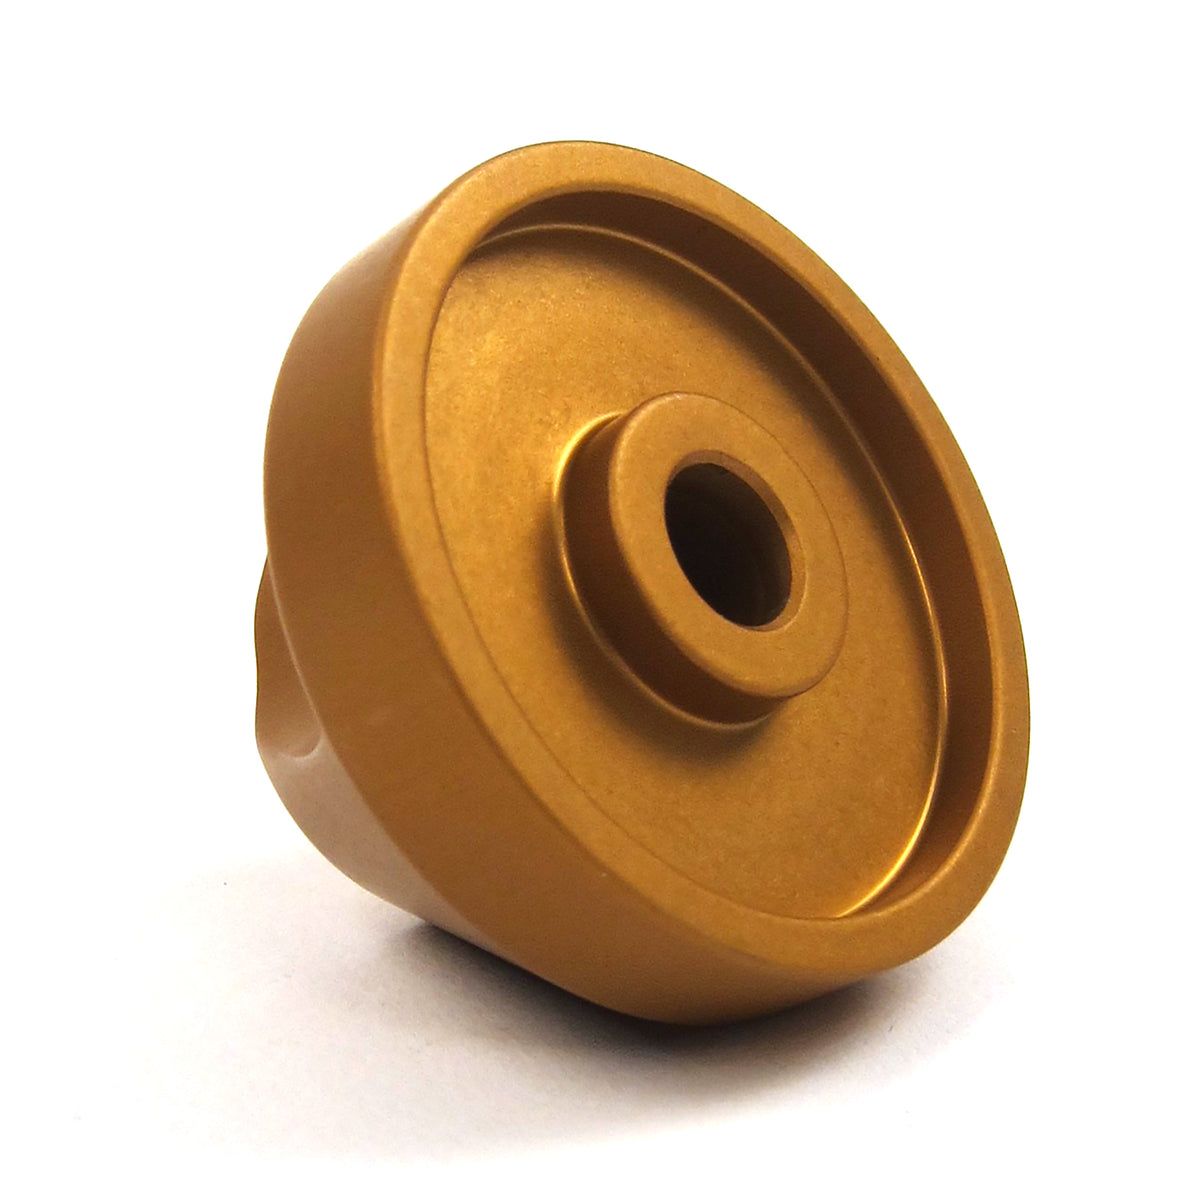 Wax Rax: 45A - 45 Adaptor - Gold